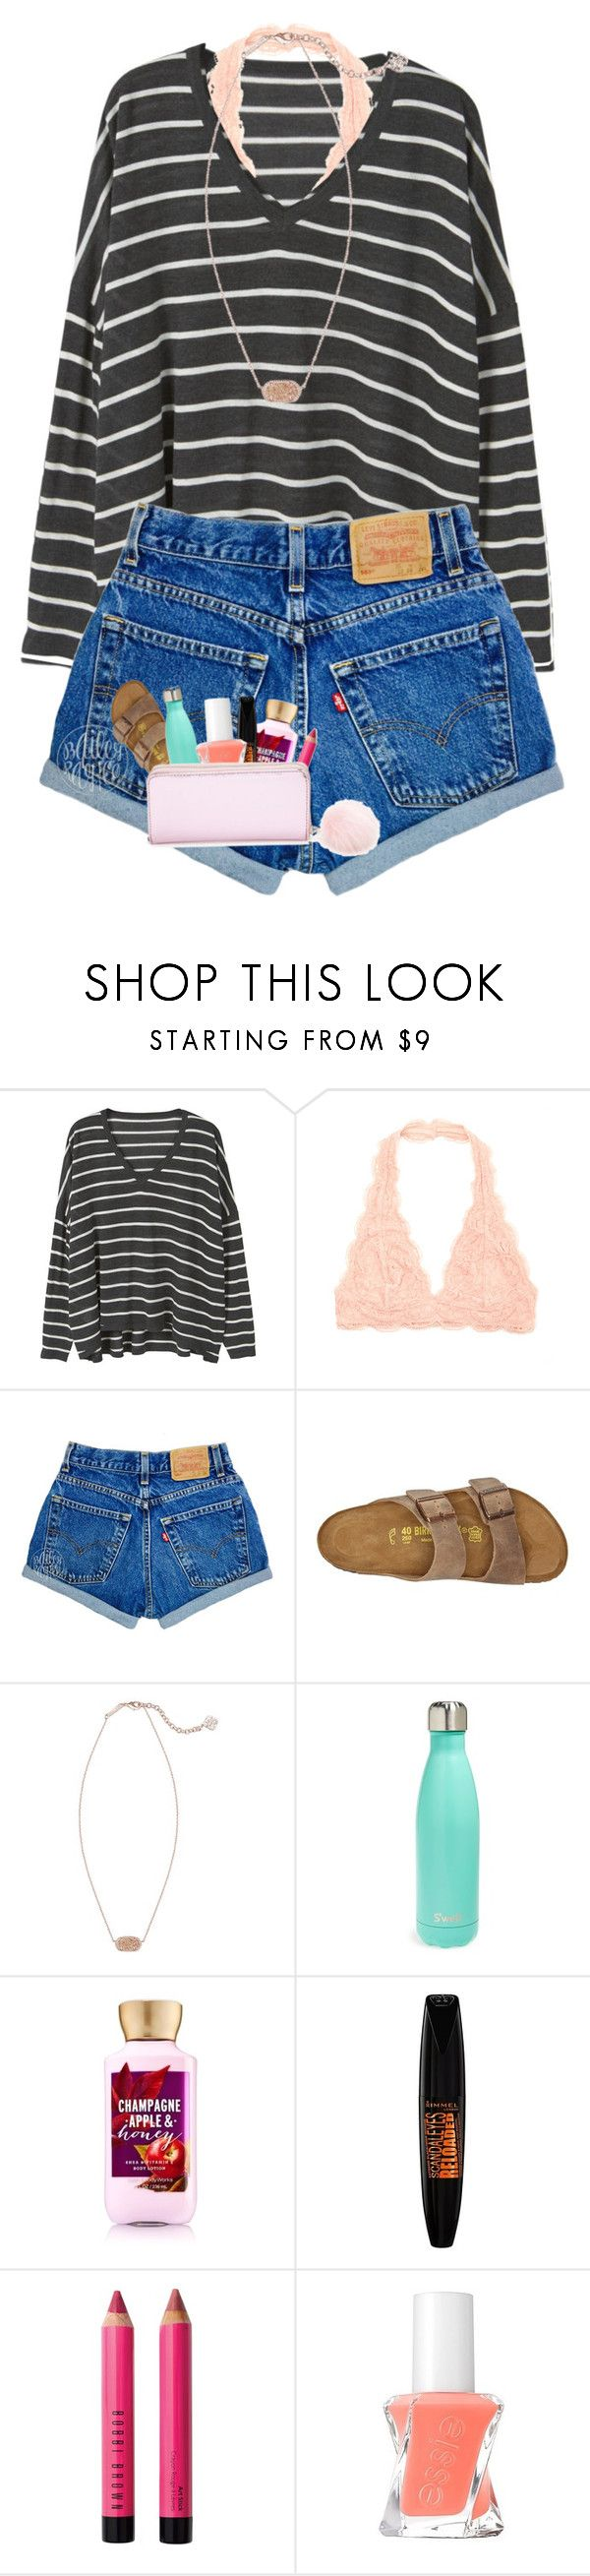 """""""A bunch of ppl just followed me for some reason """" by marthaswilliams ❤ liked on Polyvore featuring MANGO, Birkenstock, Kendra Scott, S'well, Rimmel, Bobbi Brown Cosmetics, Essie and Forever 21"""